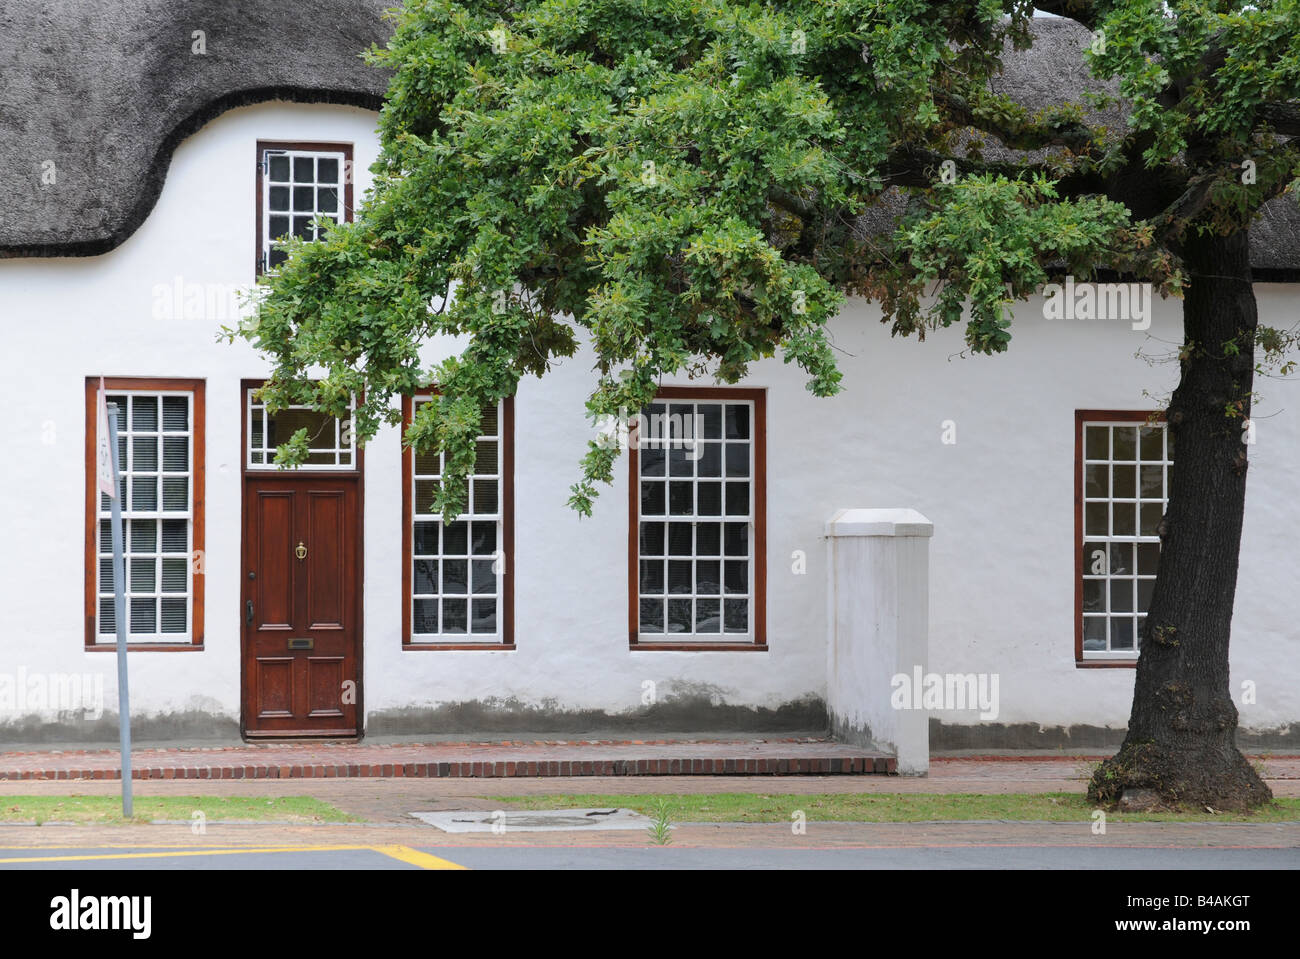 geography / travel, South Africa, Stellenbosch, buildings